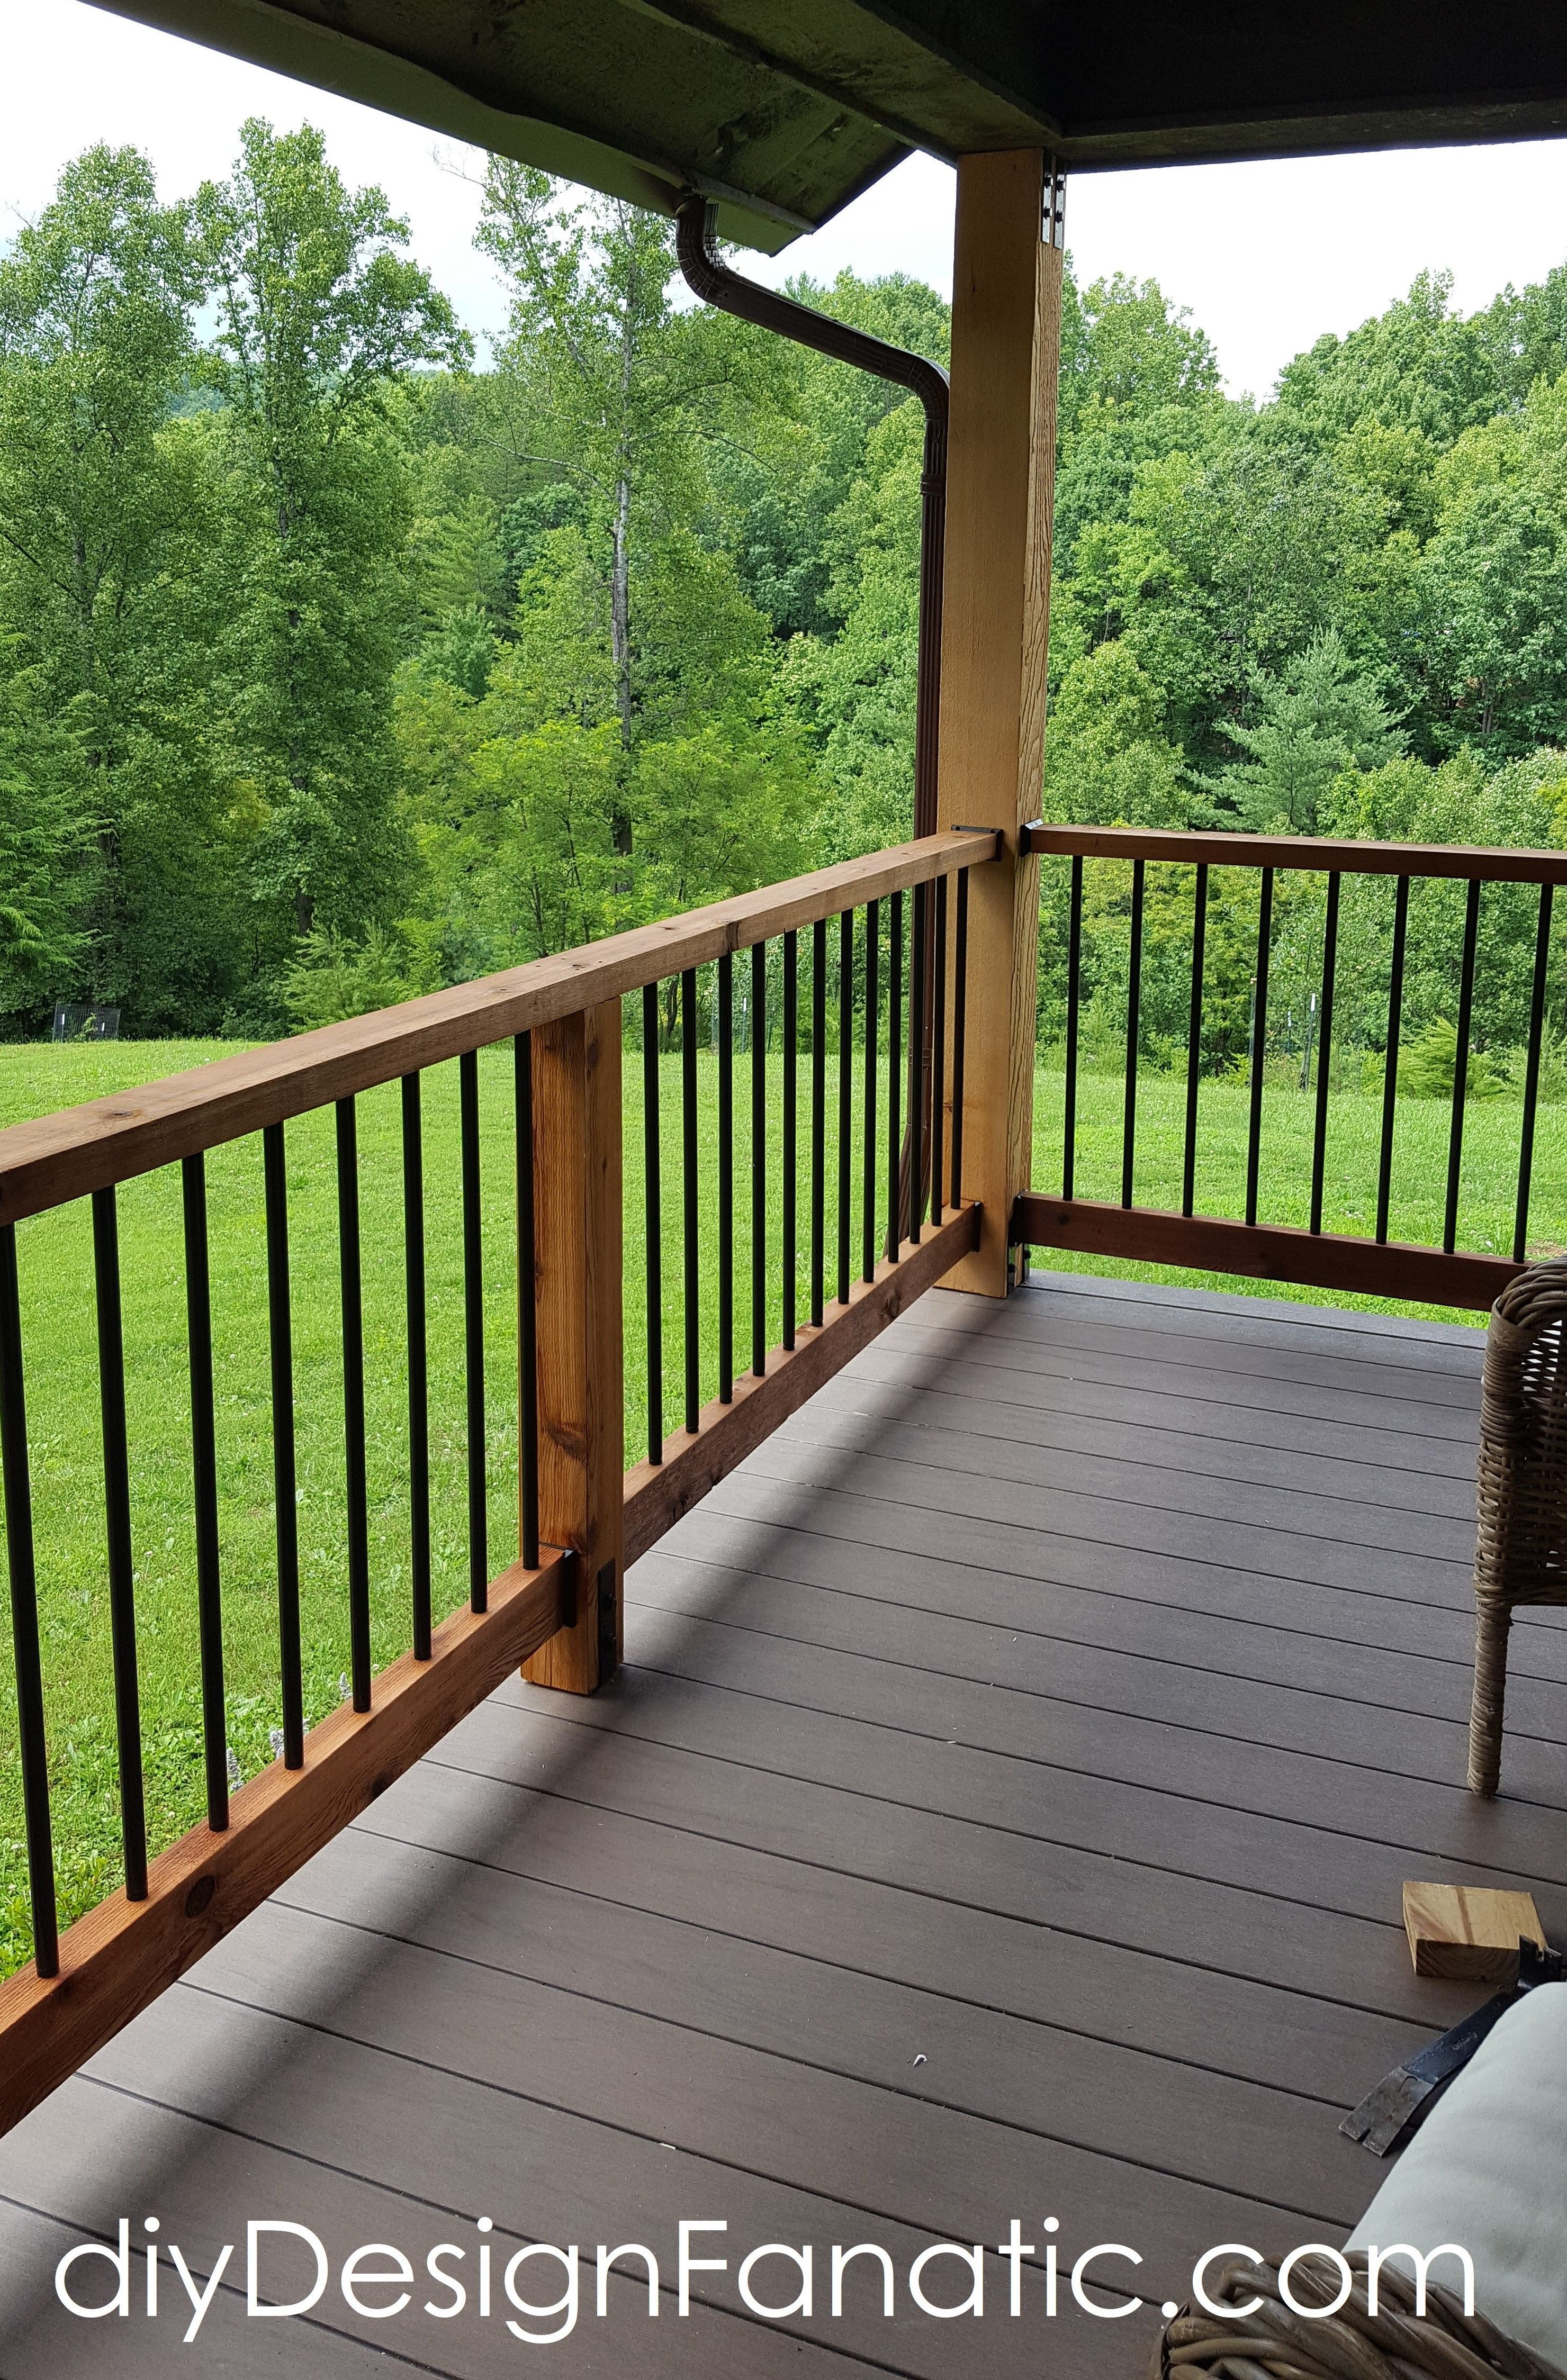 Replacing An Old Deck Decks And Porches Deck Composite Decking